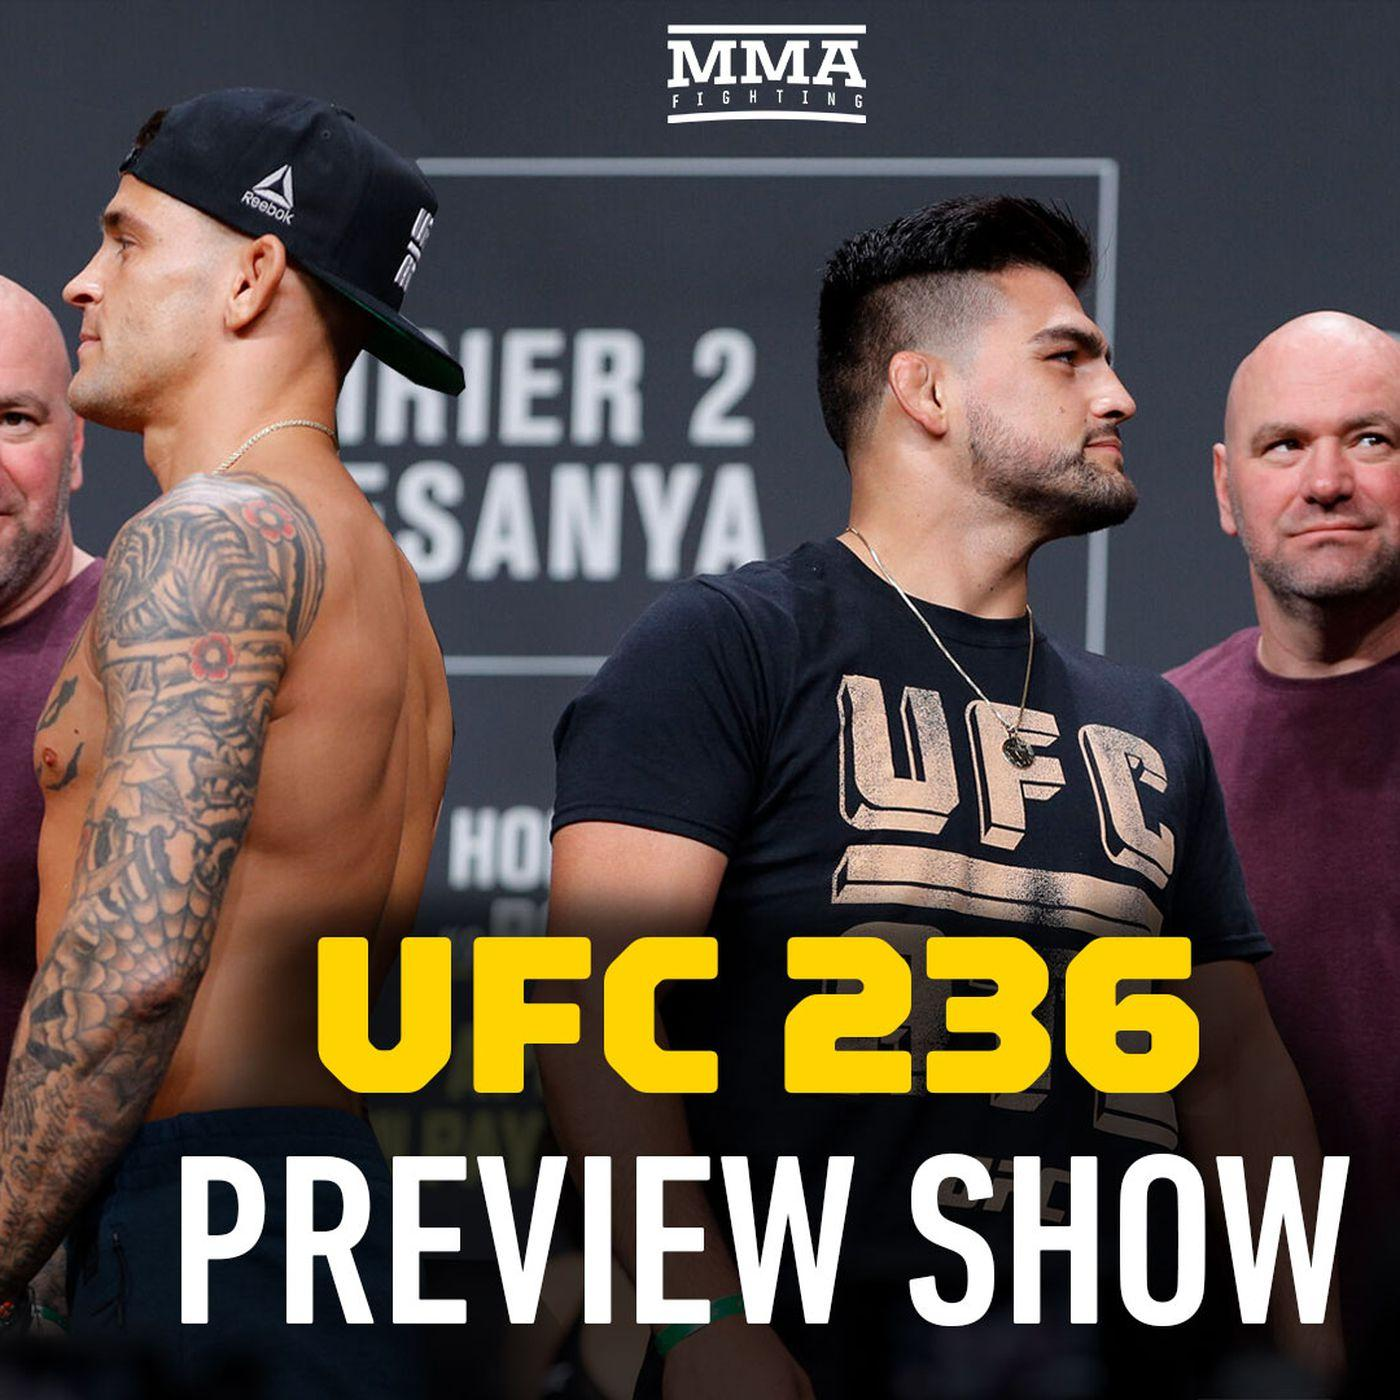 UFC 236 preview show - MMA Fighting